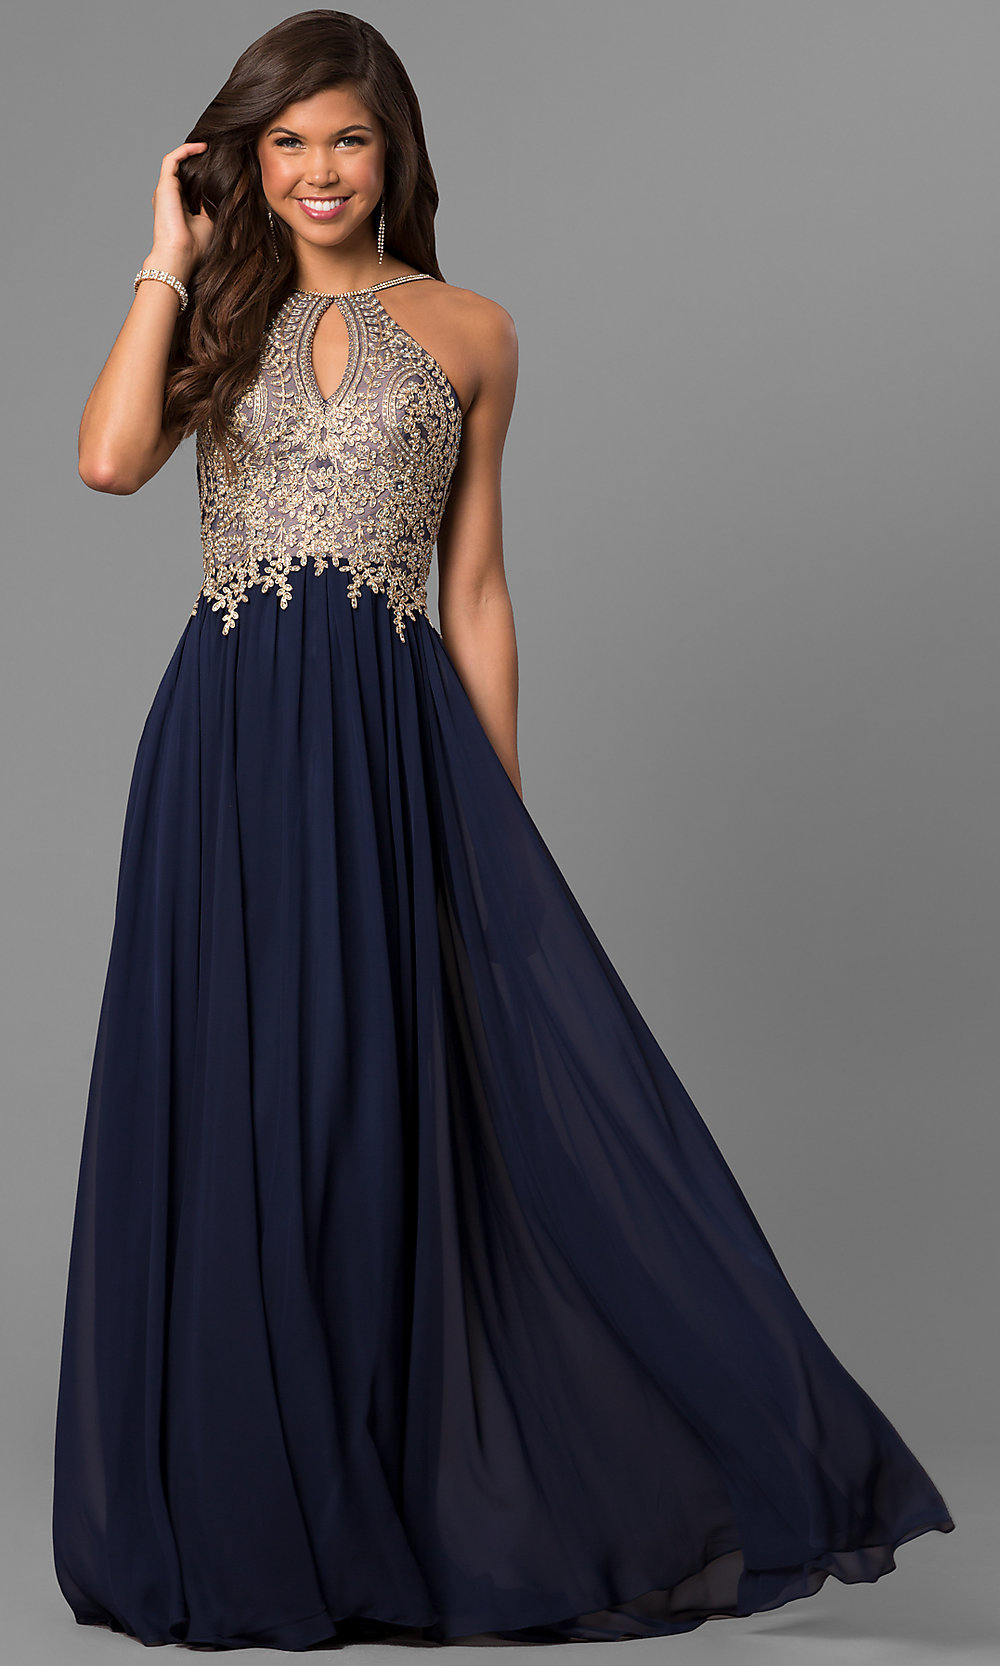 Collection Full Sleeve Dresses Prom Pictures - Vicing